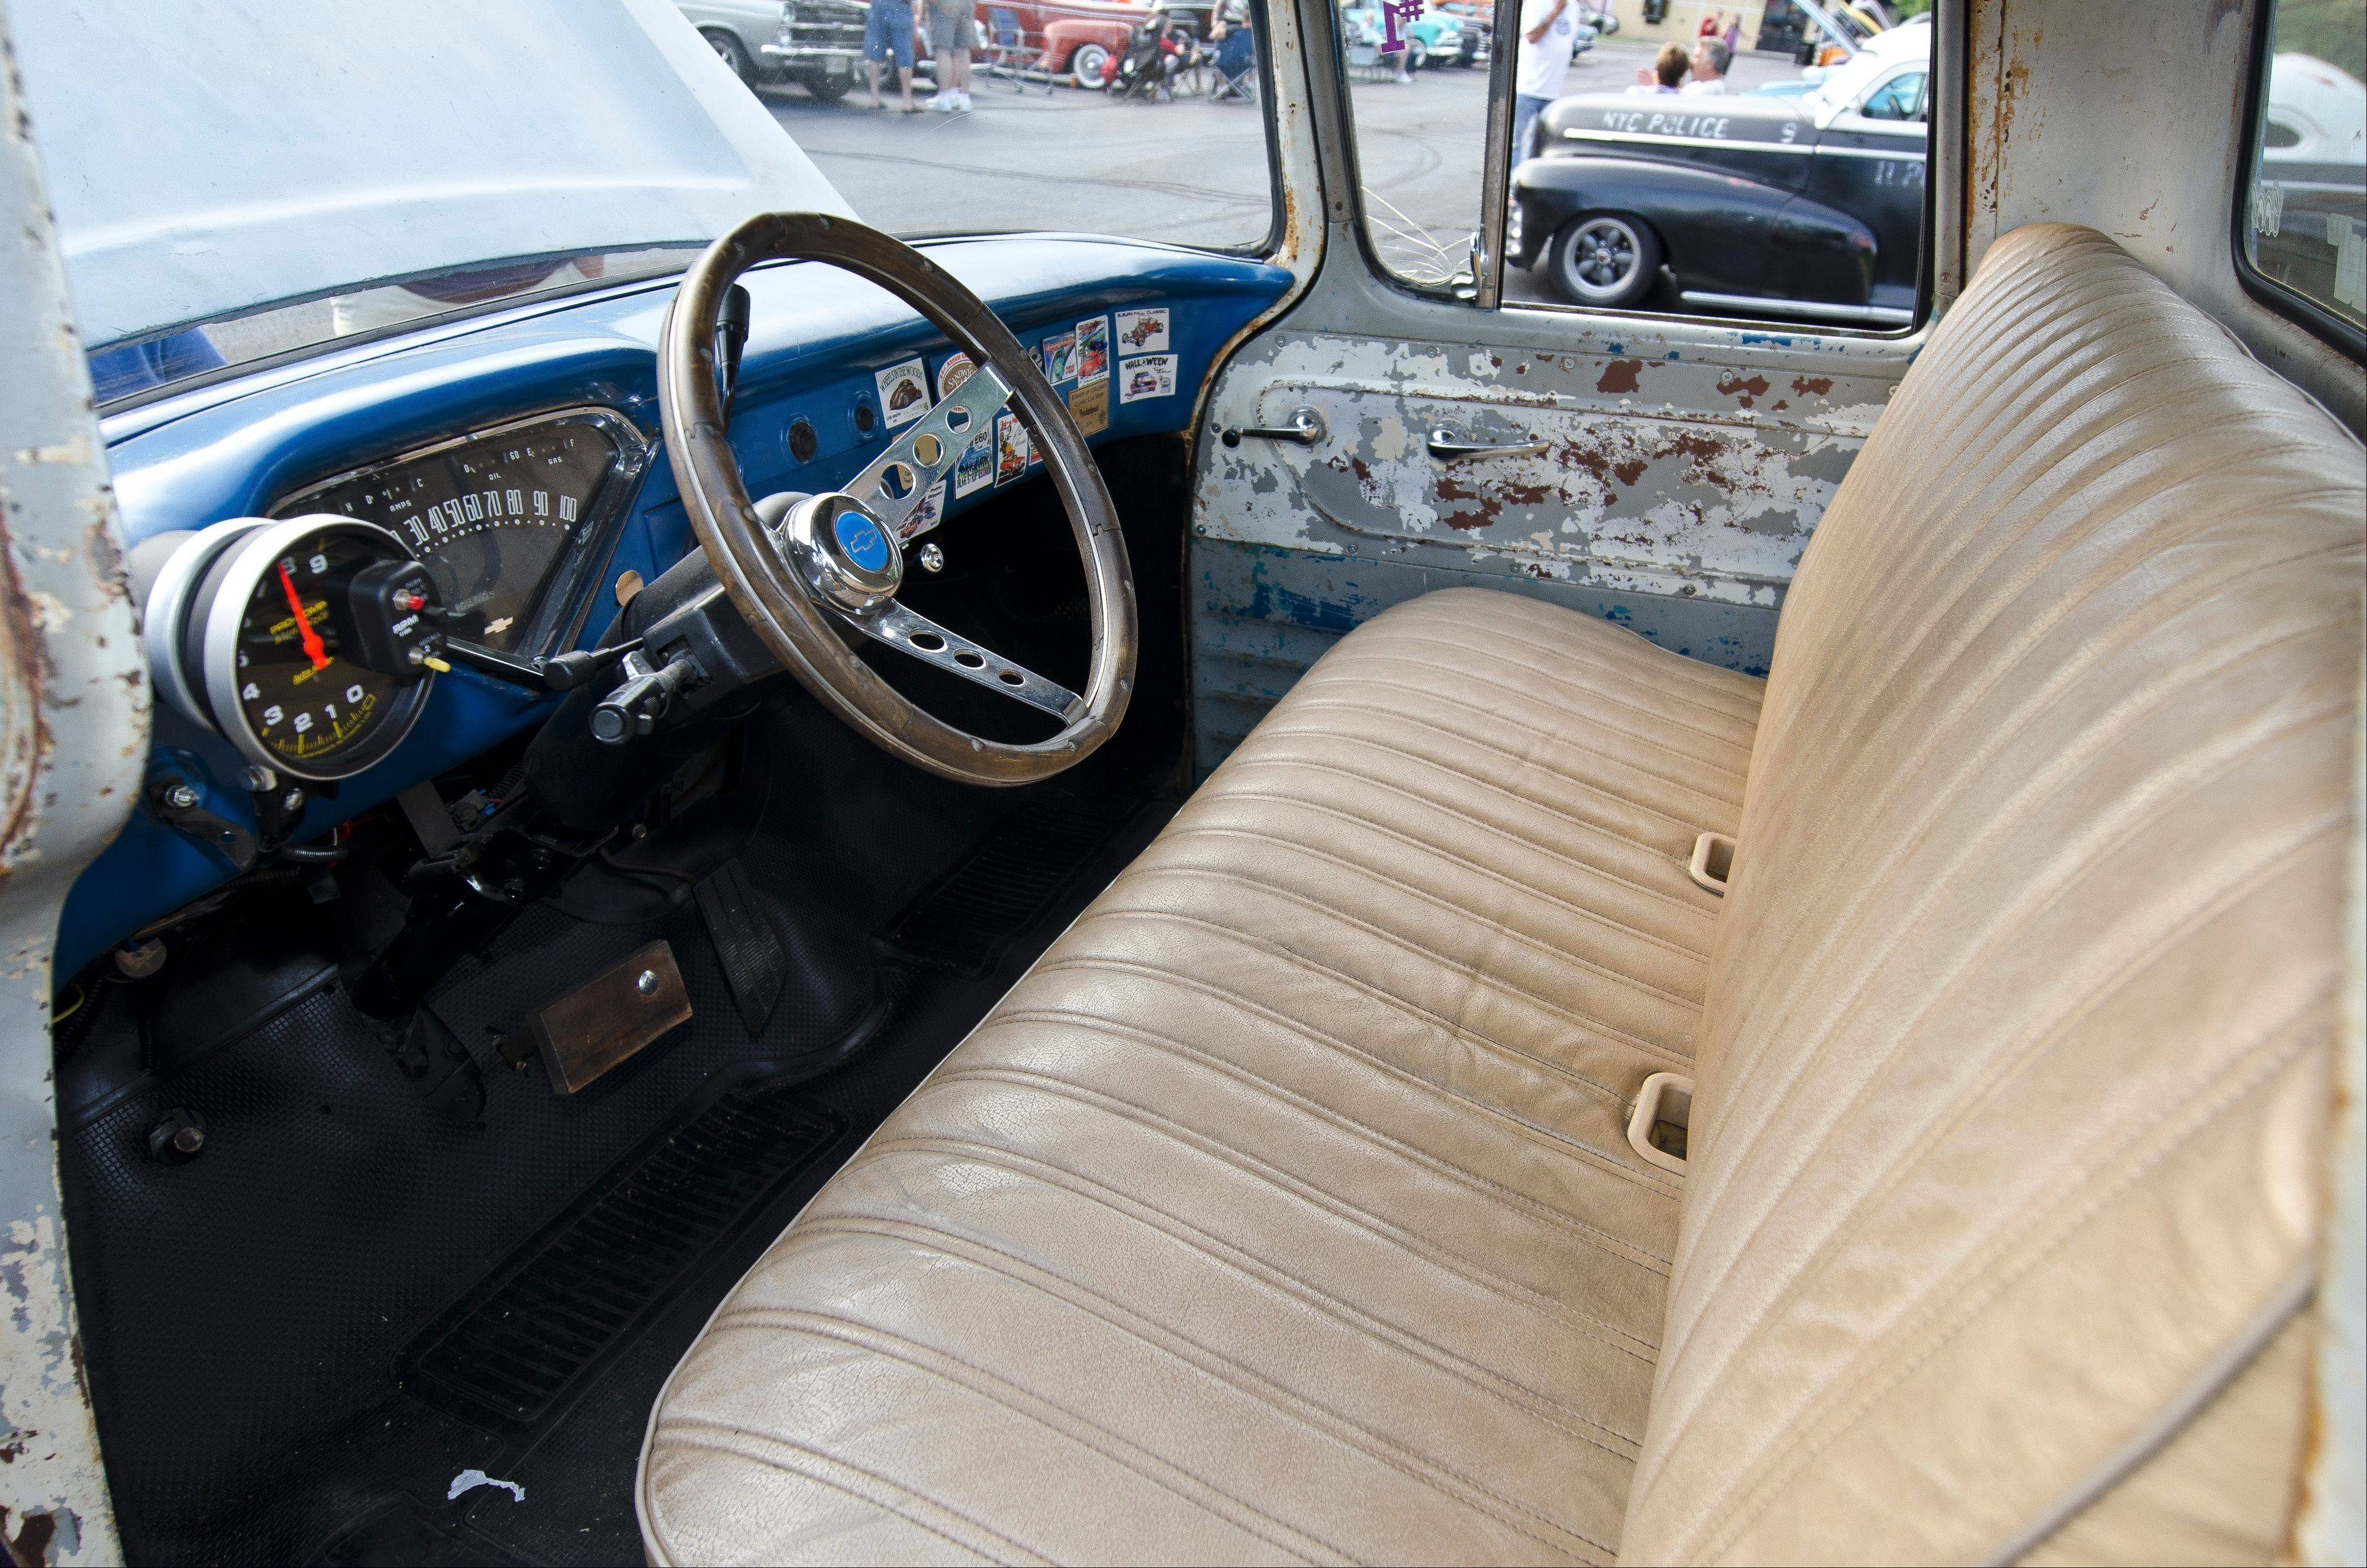 While a new seat and steering wheel grace the cab, much of the interior also has been kept in original condition.